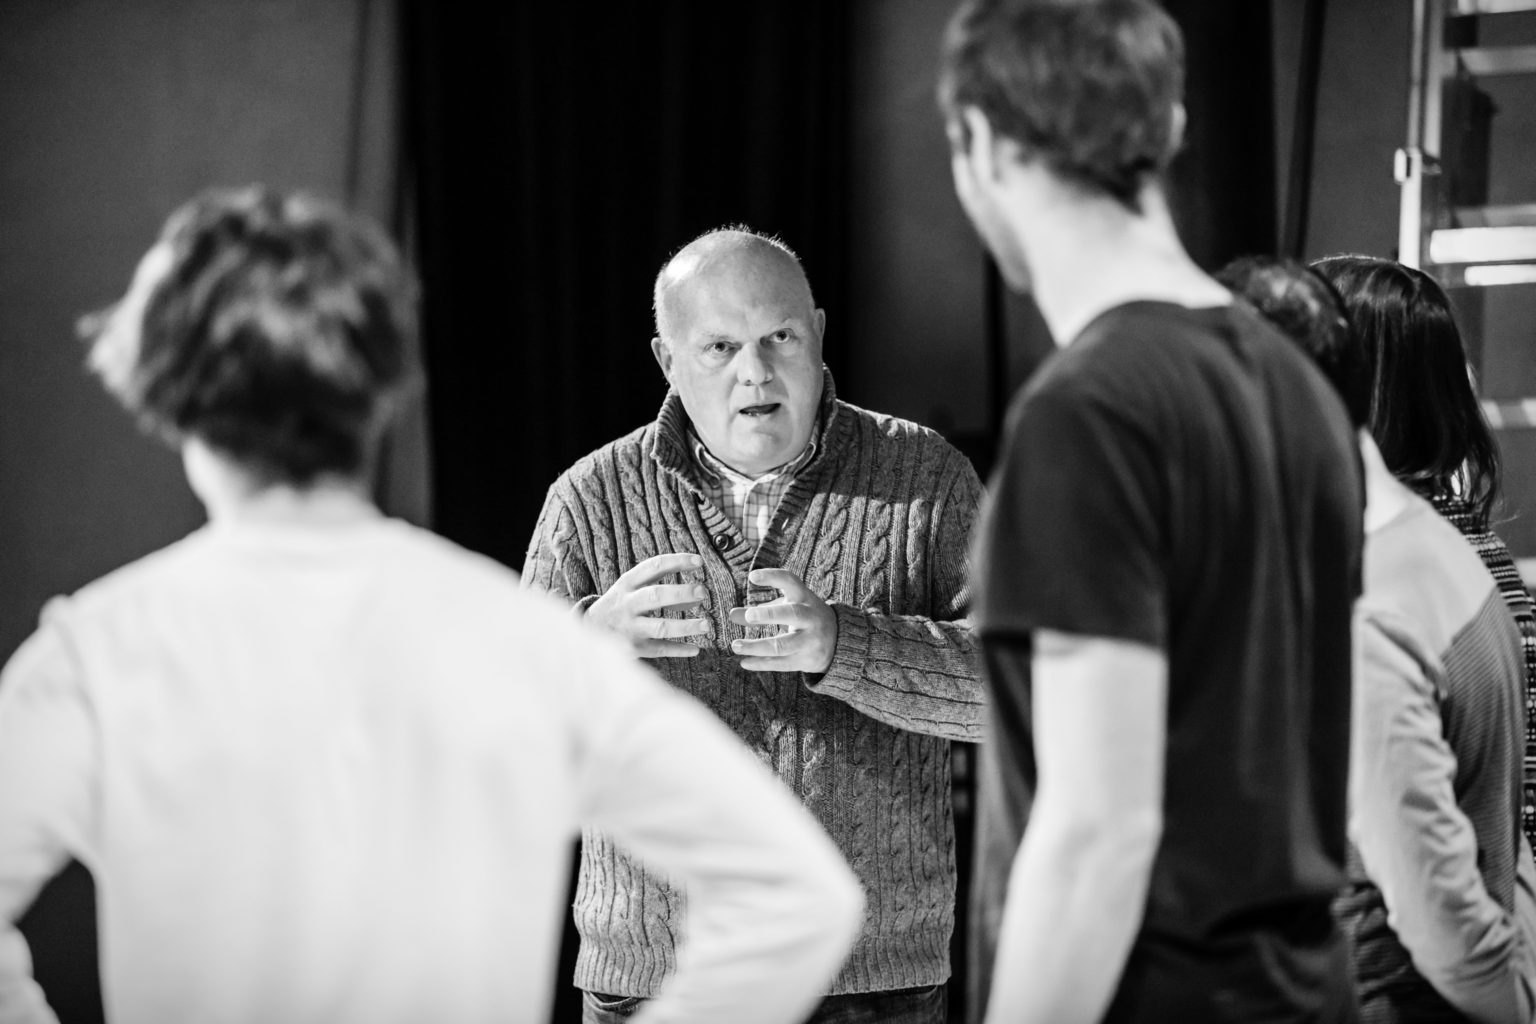 Declan Donnellan talks to Dominic Cavendish during week three of Troilus and Cressida rehearsals